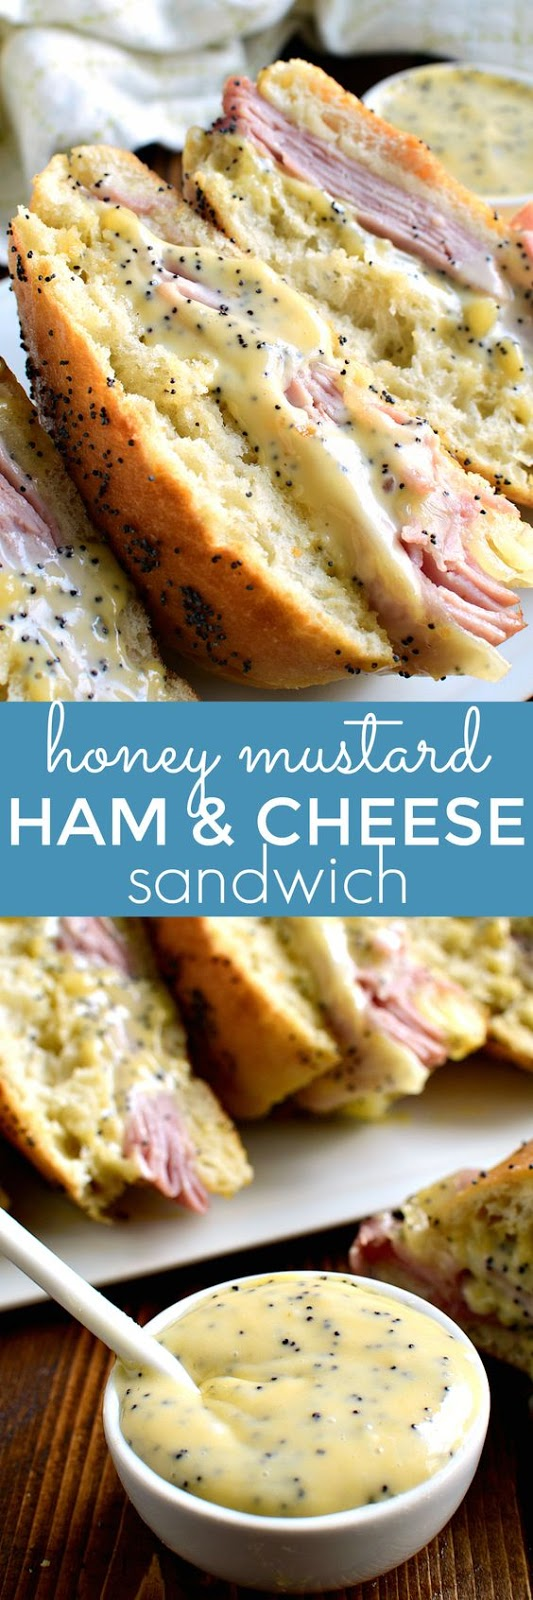 HONEY MUSTARD HAM & CHEESE SANDWICH